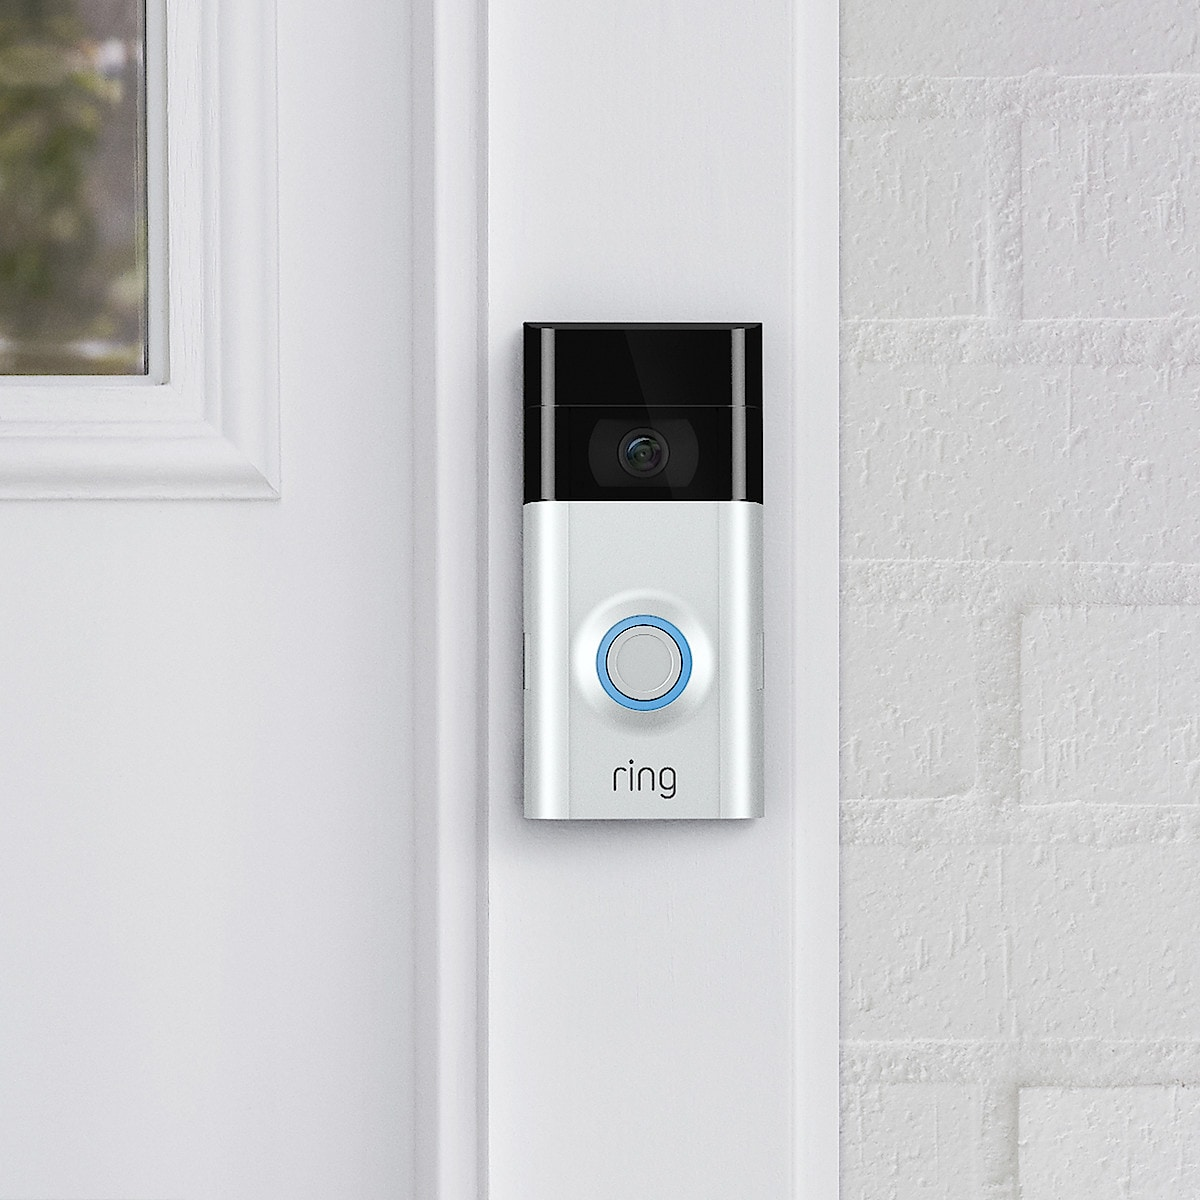 Ring Video Doorbell 2 Doorbell with Camera